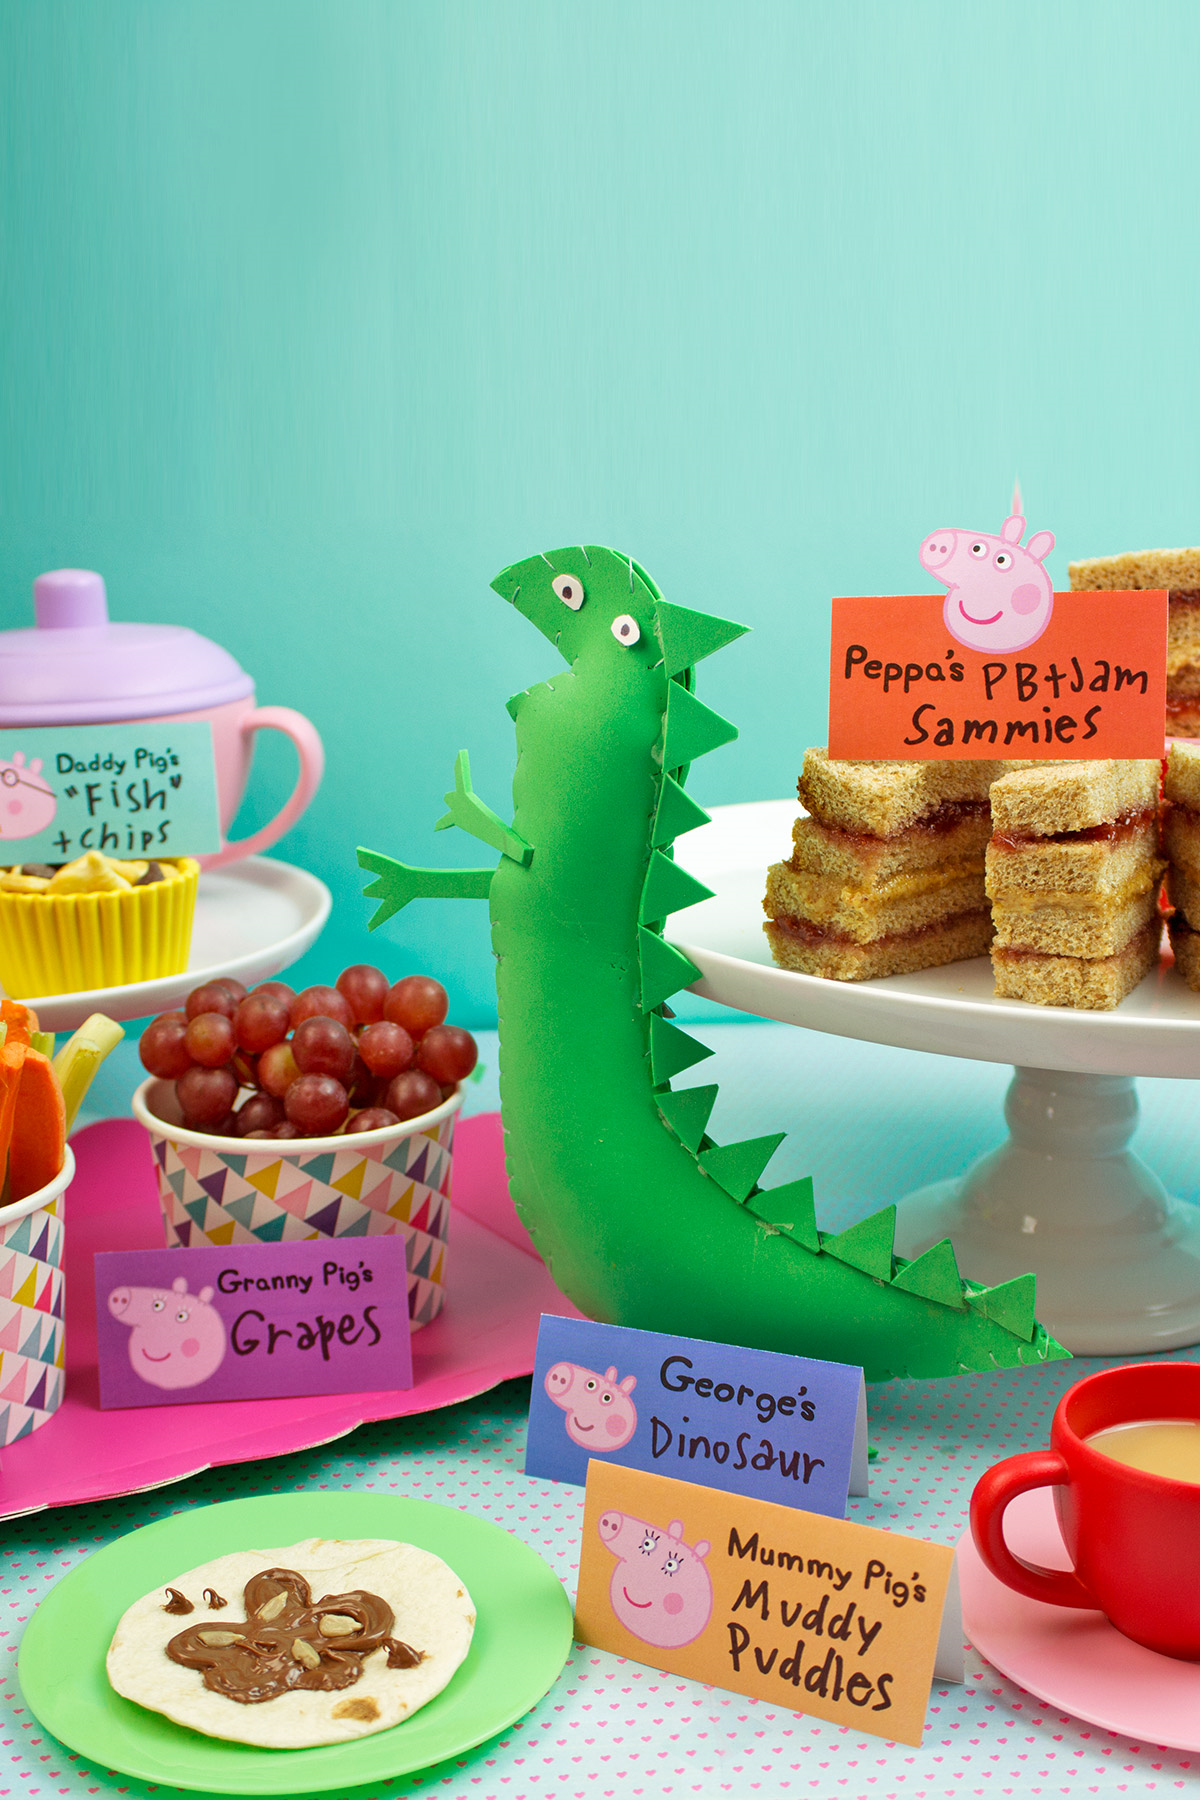 Peppa Pig Healthy Tea Party